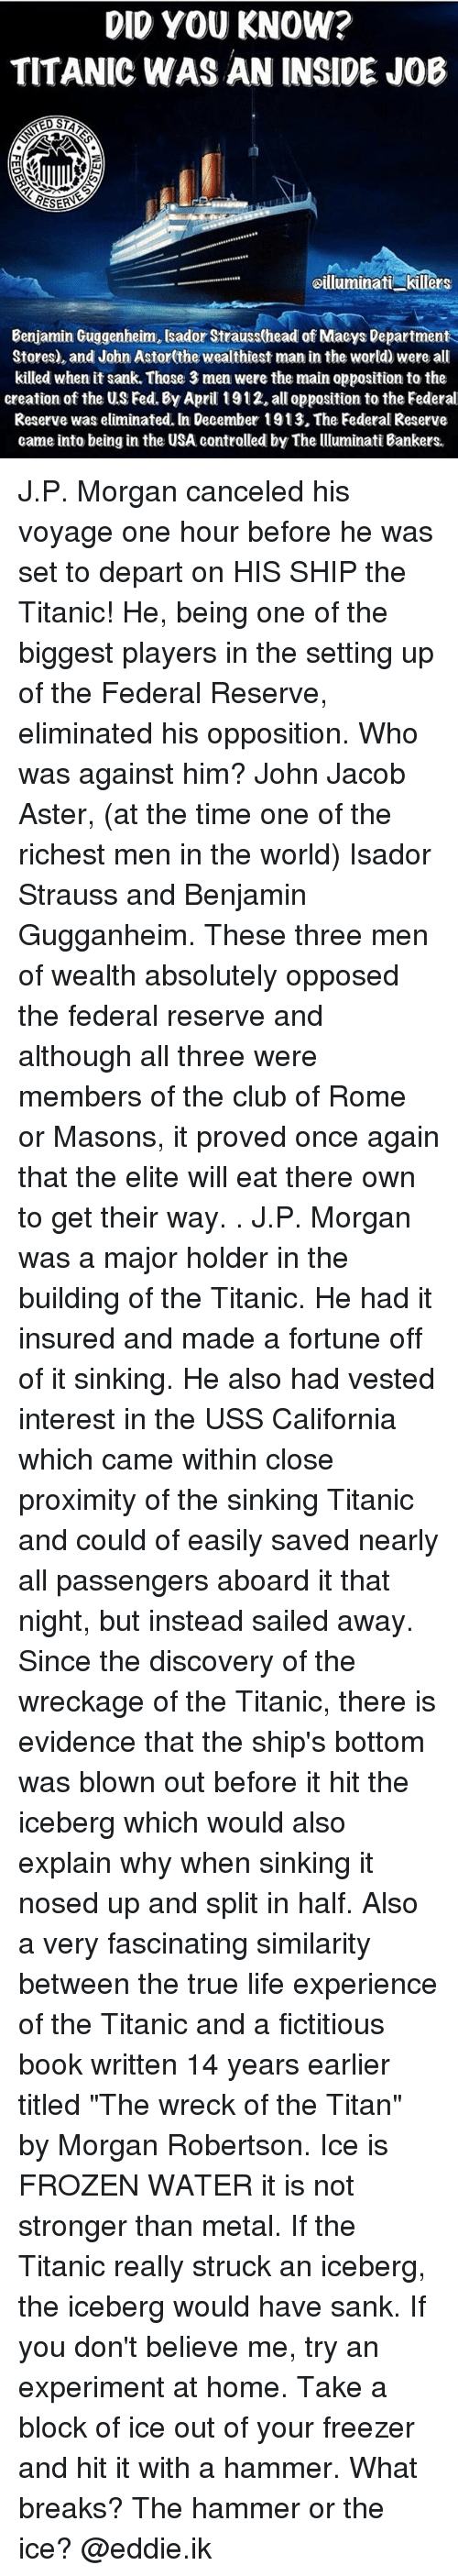 """departed: DID YOU KNOW?  TITANIC WAS AN INSIDE JOB  RESERA  oilluminati killers  Benjamin Guggenheim, sador Strauss(head of Maeys Department  Stores), and John Astor(the wealthiest man in the world) were all  killed when it sank. Those 3 men were the main opposition to the  creation of the US Fed. By April 1912.all opposition to the Federal  Reserve was eliminated. In December 1913. The Federal Reserve  came into being in the USA contralled by The lluminati Bankers. J.P. Morgan canceled his voyage one hour before he was set to depart on HIS SHIP the Titanic! He, being one of the biggest players in the setting up of the Federal Reserve, eliminated his opposition. Who was against him? John Jacob Aster, (at the time one of the richest men in the world) Isador Strauss and Benjamin Gugganheim. These three men of wealth absolutely opposed the federal reserve and although all three were members of the club of Rome or Masons, it proved once again that the elite will eat there own to get their way. . J.P. Morgan was a major holder in the building of the Titanic. He had it insured and made a fortune off of it sinking. He also had vested interest in the USS California which came within close proximity of the sinking Titanic and could of easily saved nearly all passengers aboard it that night, but instead sailed away. Since the discovery of the wreckage of the Titanic, there is evidence that the ship's bottom was blown out before it hit the iceberg which would also explain why when sinking it nosed up and split in half. Also a very fascinating similarity between the true life experience of the Titanic and a fictitious book written 14 years earlier titled """"The wreck of the Titan"""" by Morgan Robertson. Ice is FROZEN WATER it is not stronger than metal. If the Titanic really struck an iceberg, the iceberg would have sank. If you don't believe me, try an experiment at home. Take a block of ice out of your freezer and hit it with a hammer. What breaks? The hammer or the ice? @eddie.i"""